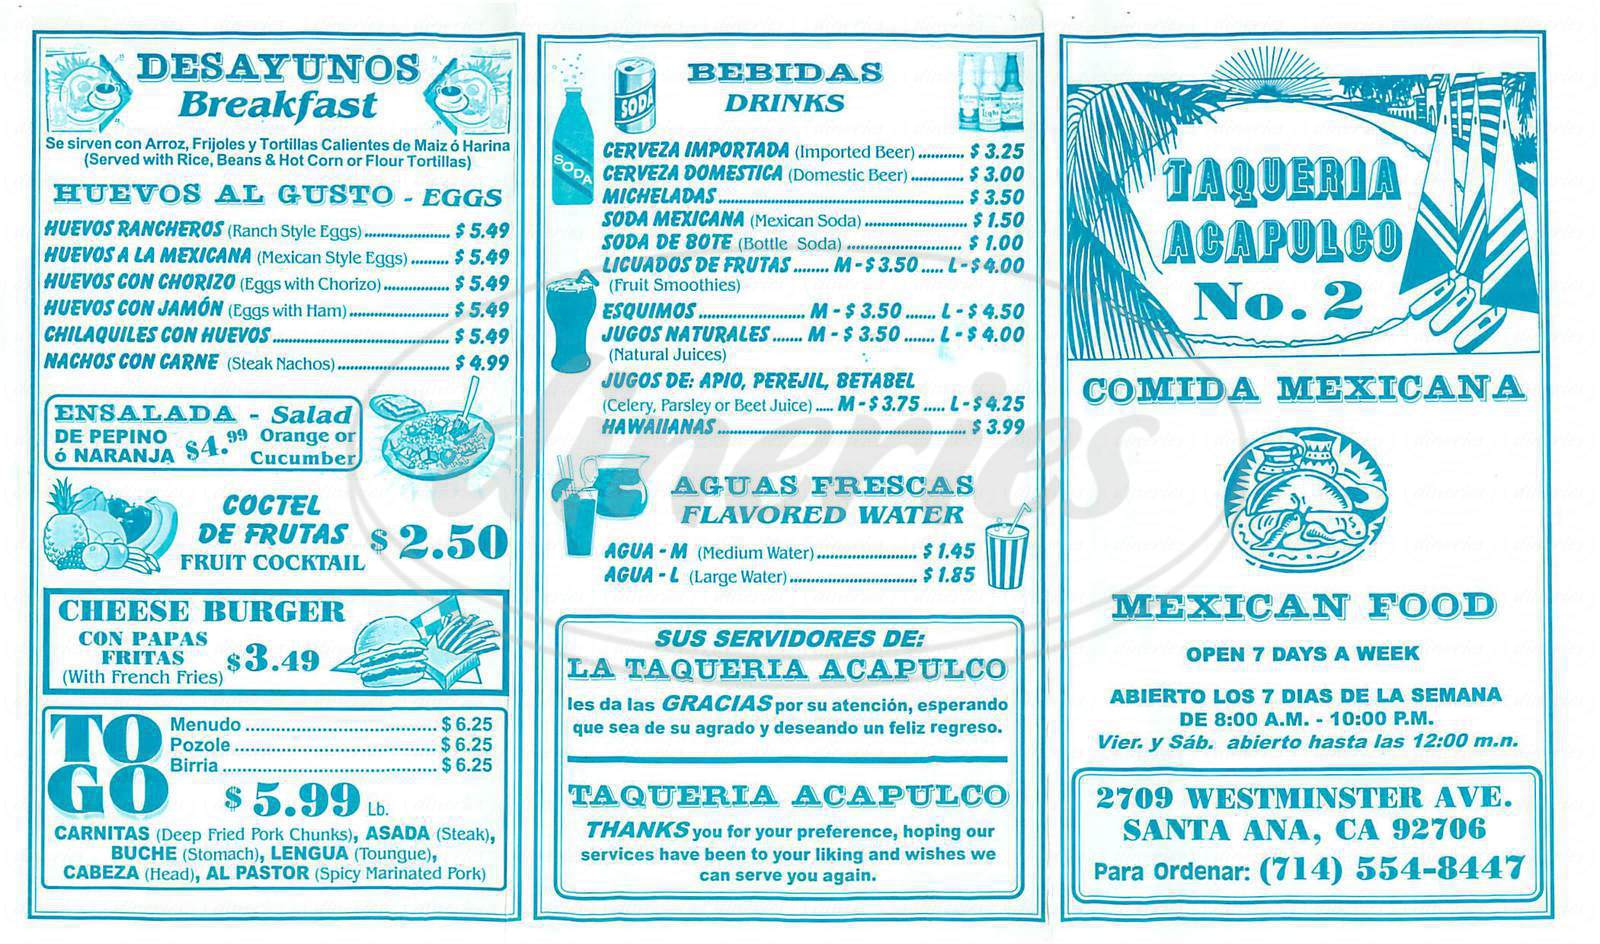 menu for Taqueria Acapulco